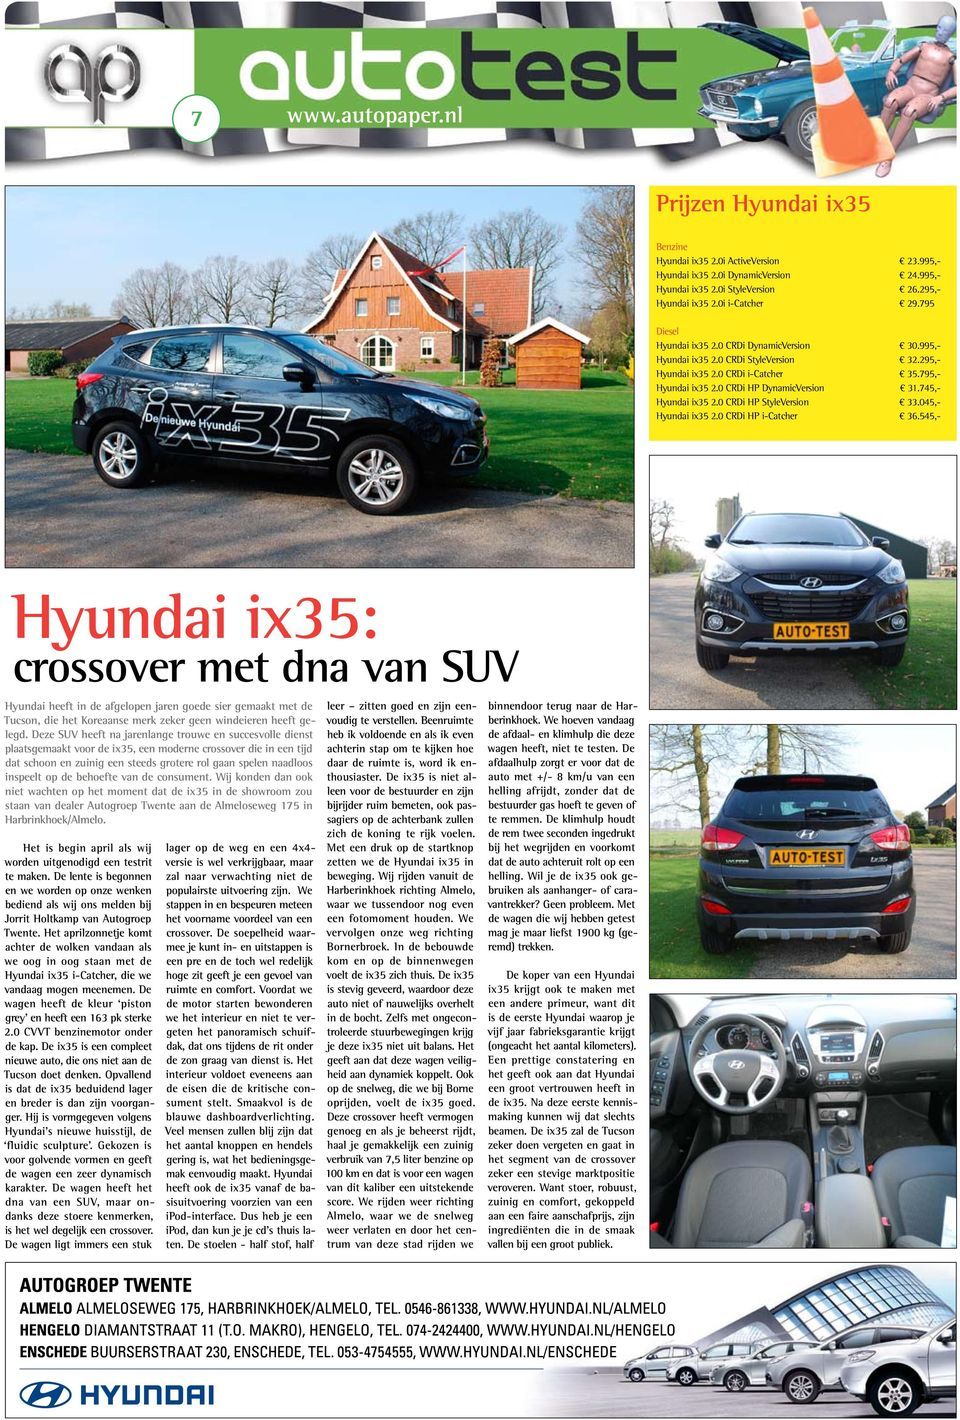 745,- Hyundai ix35 2.0 CRDi HP StyleVersion 33.045,- Hyundai ix35 2.0 CRDi HP i-catcher 36.